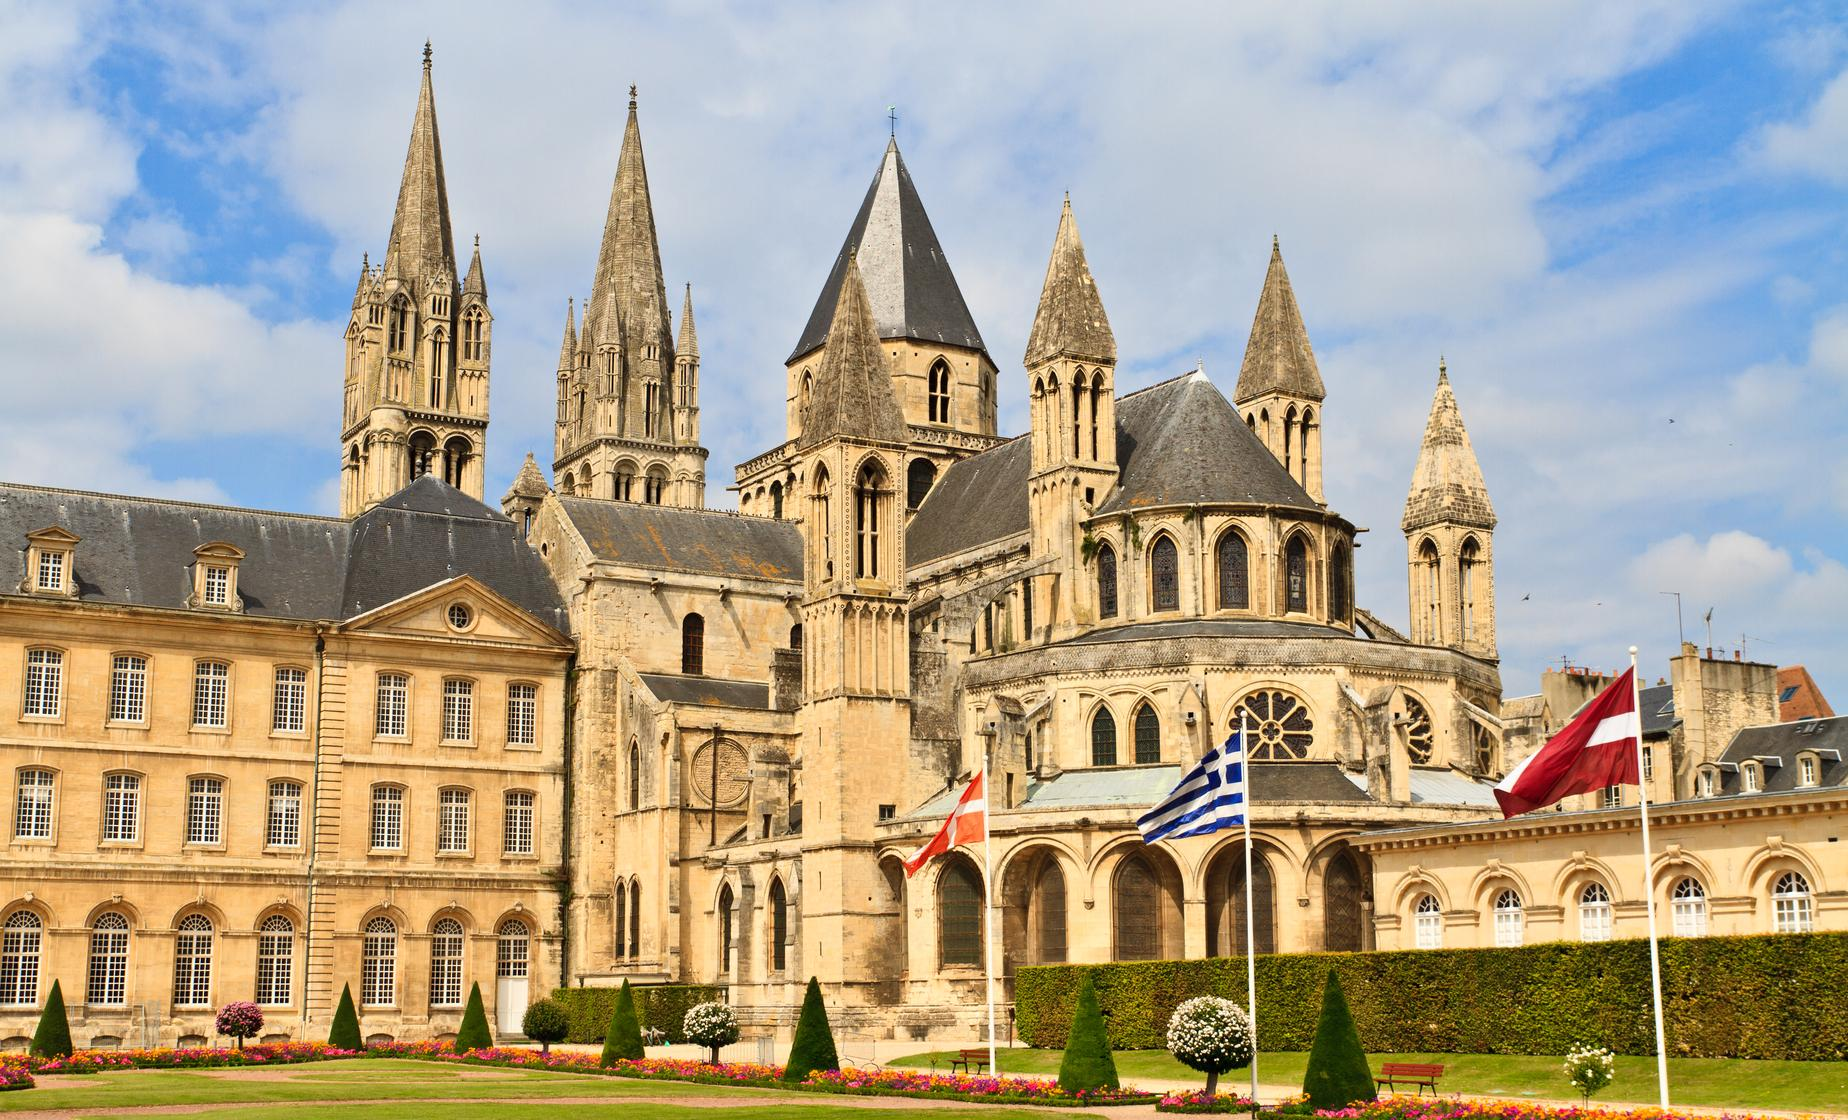 Private William the Conqueror in Bayeux and Caen Tour from La Havre